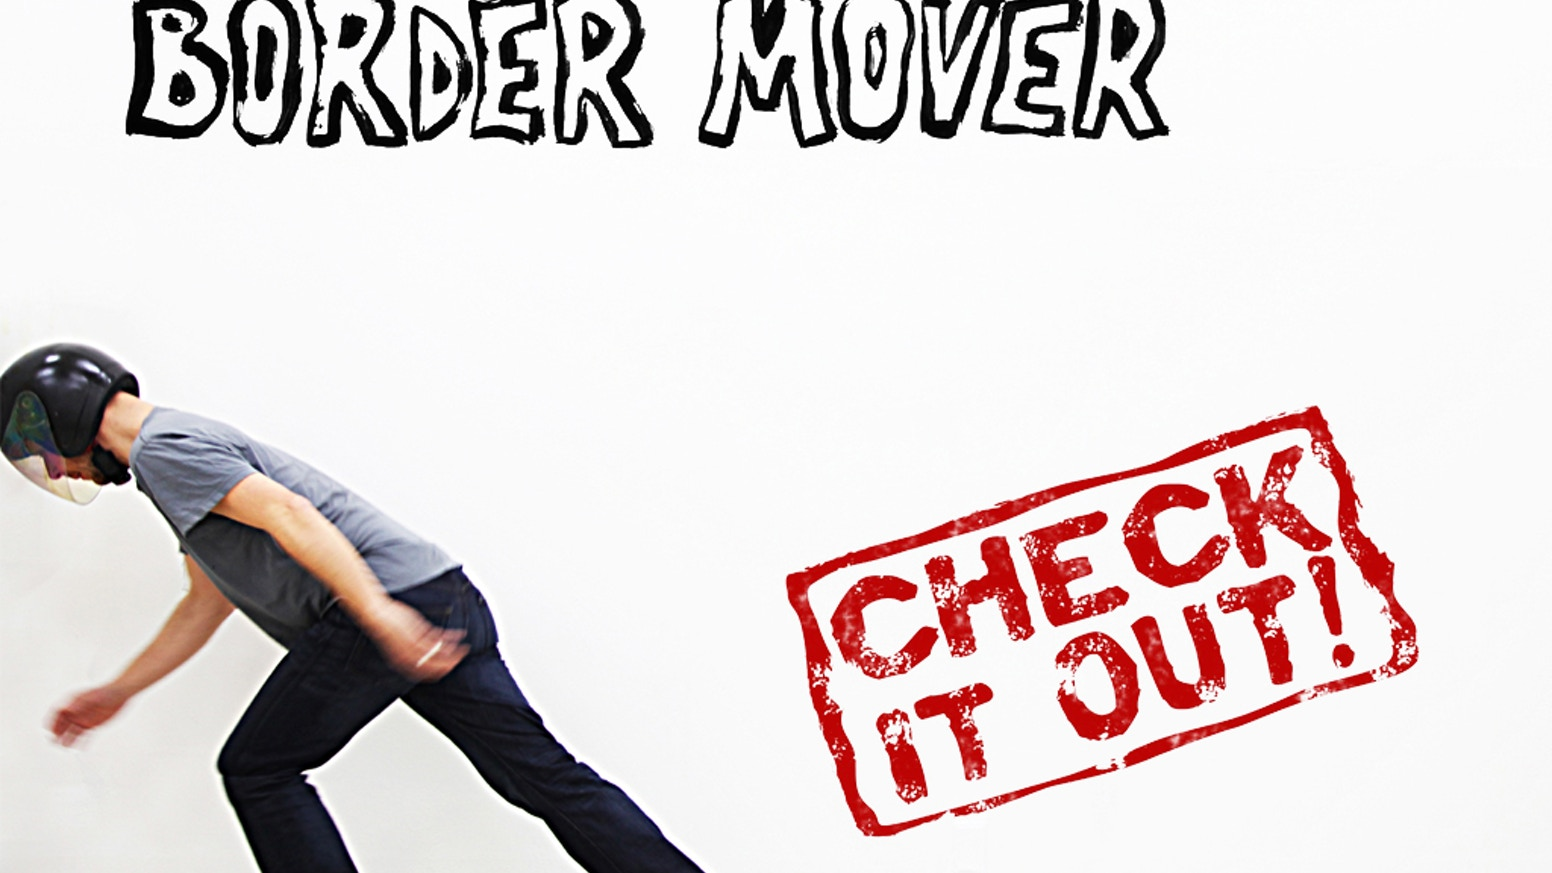 Border Mover is a new pneumatic video installation that moves borders!